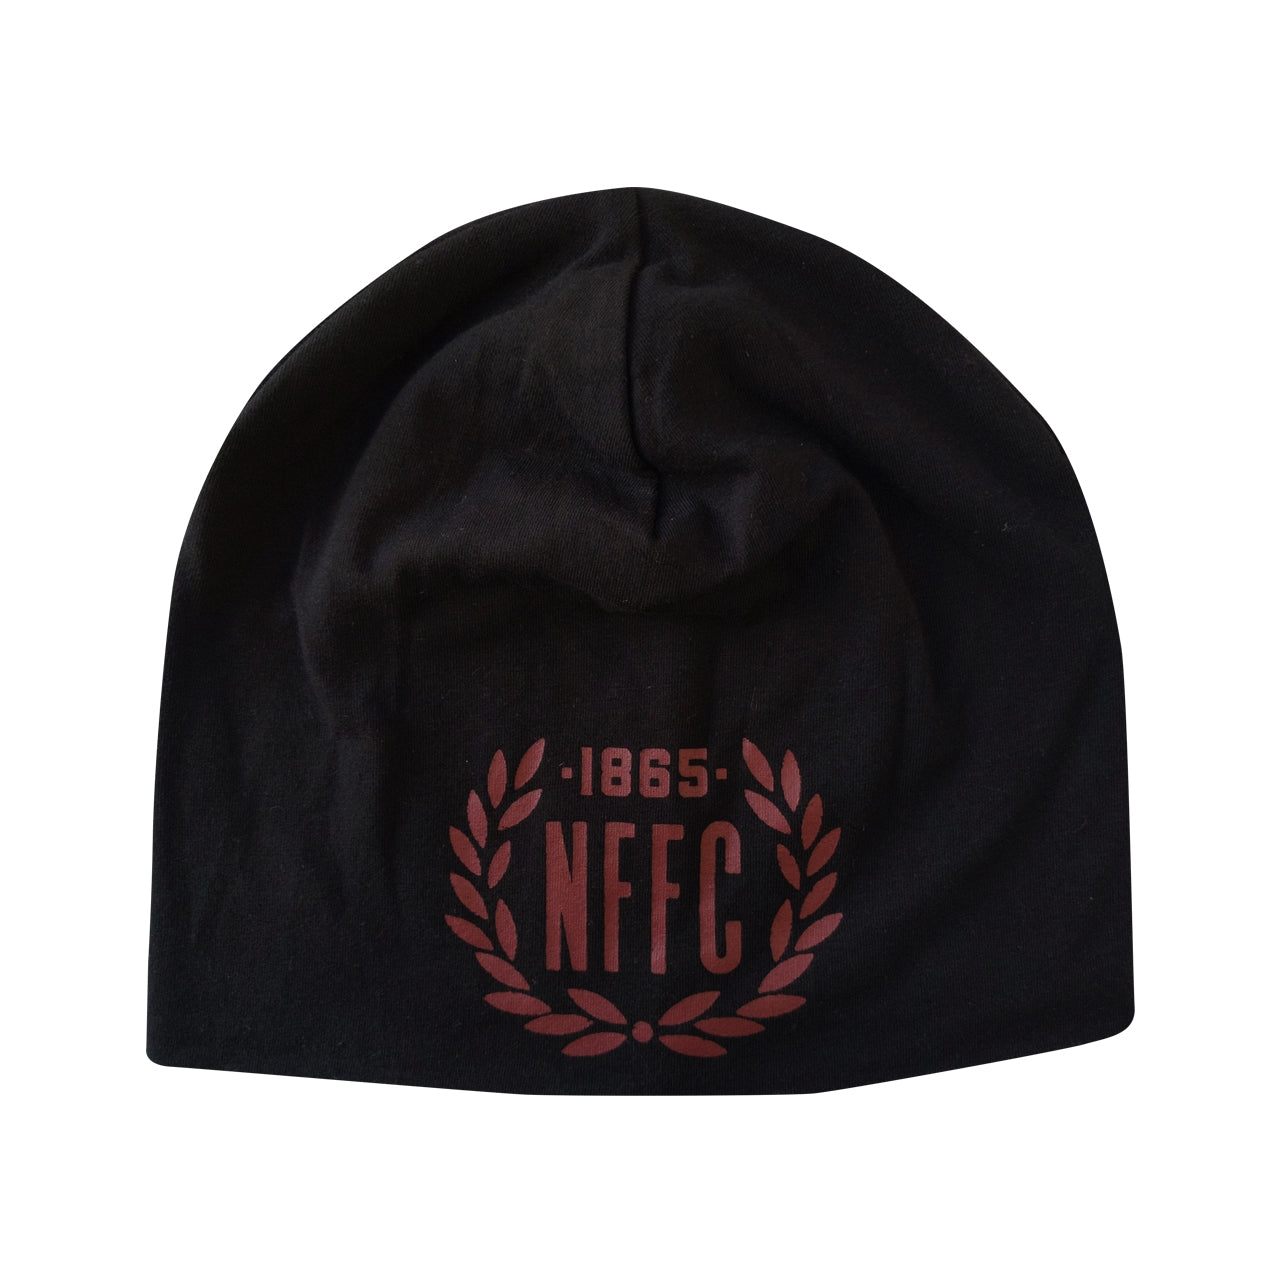 NFFC Adult Black Cotton Beanie